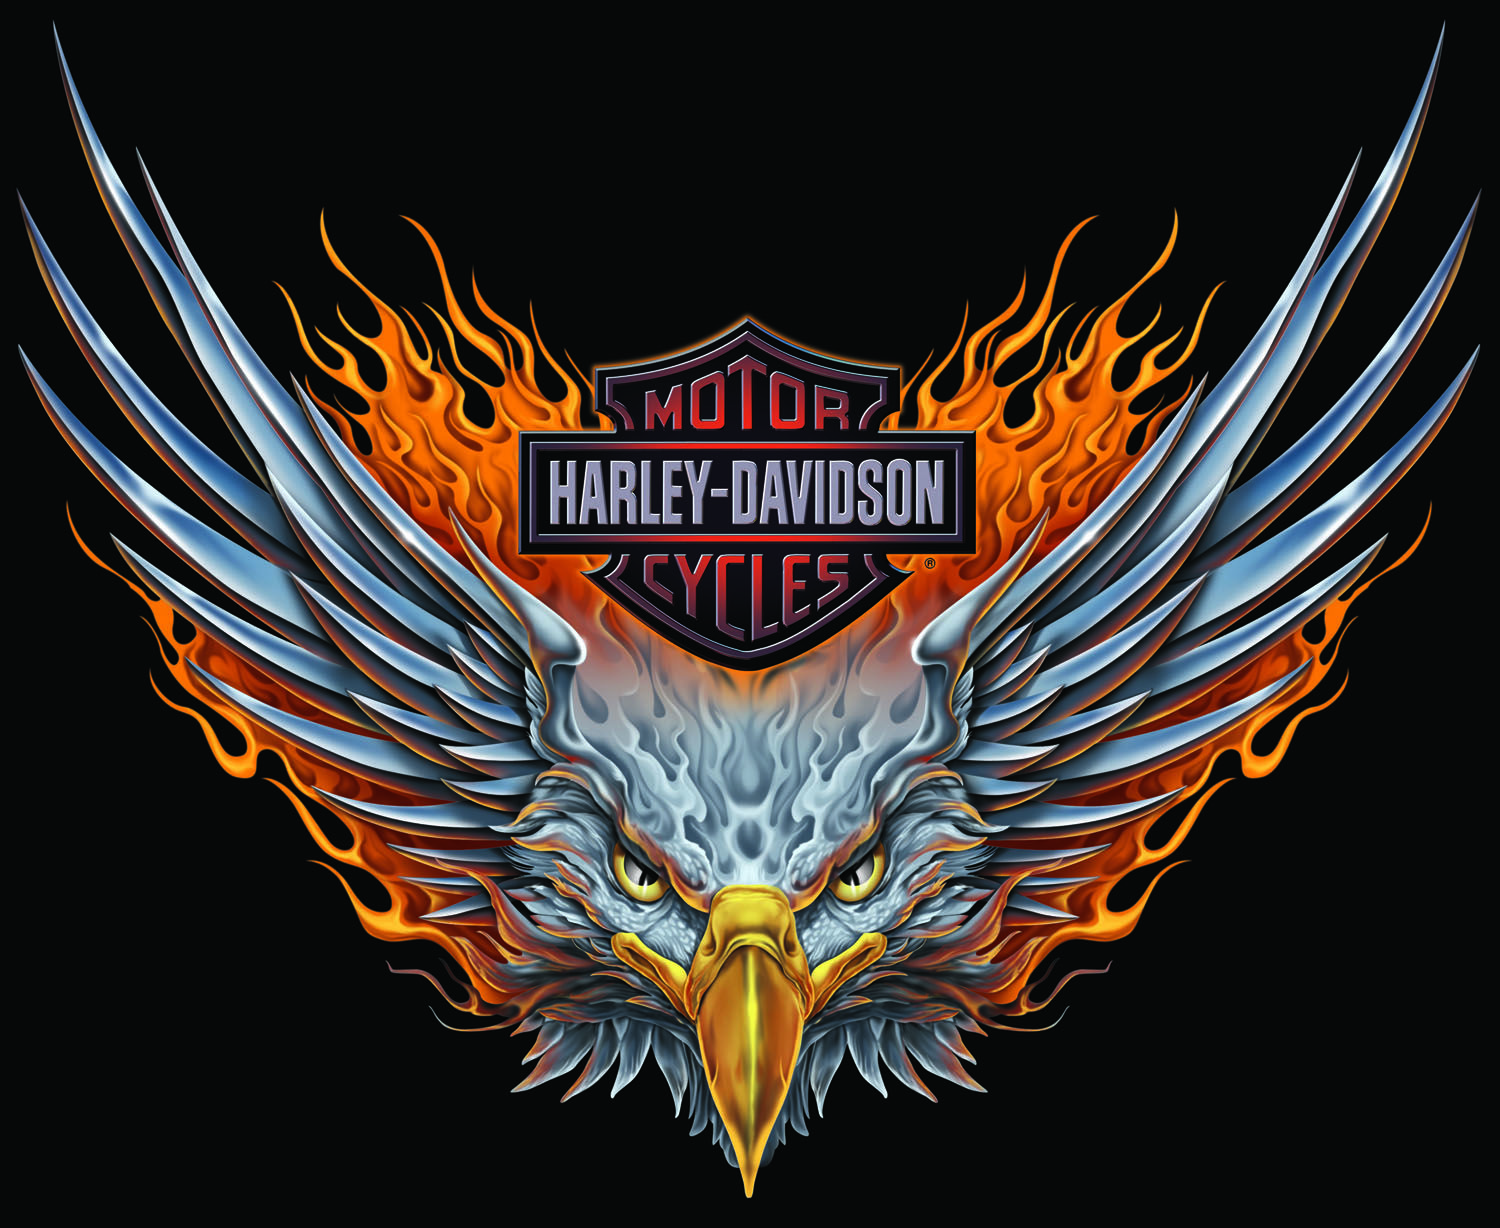 harley davidson shield tattoo for woman bullgallery com 2012